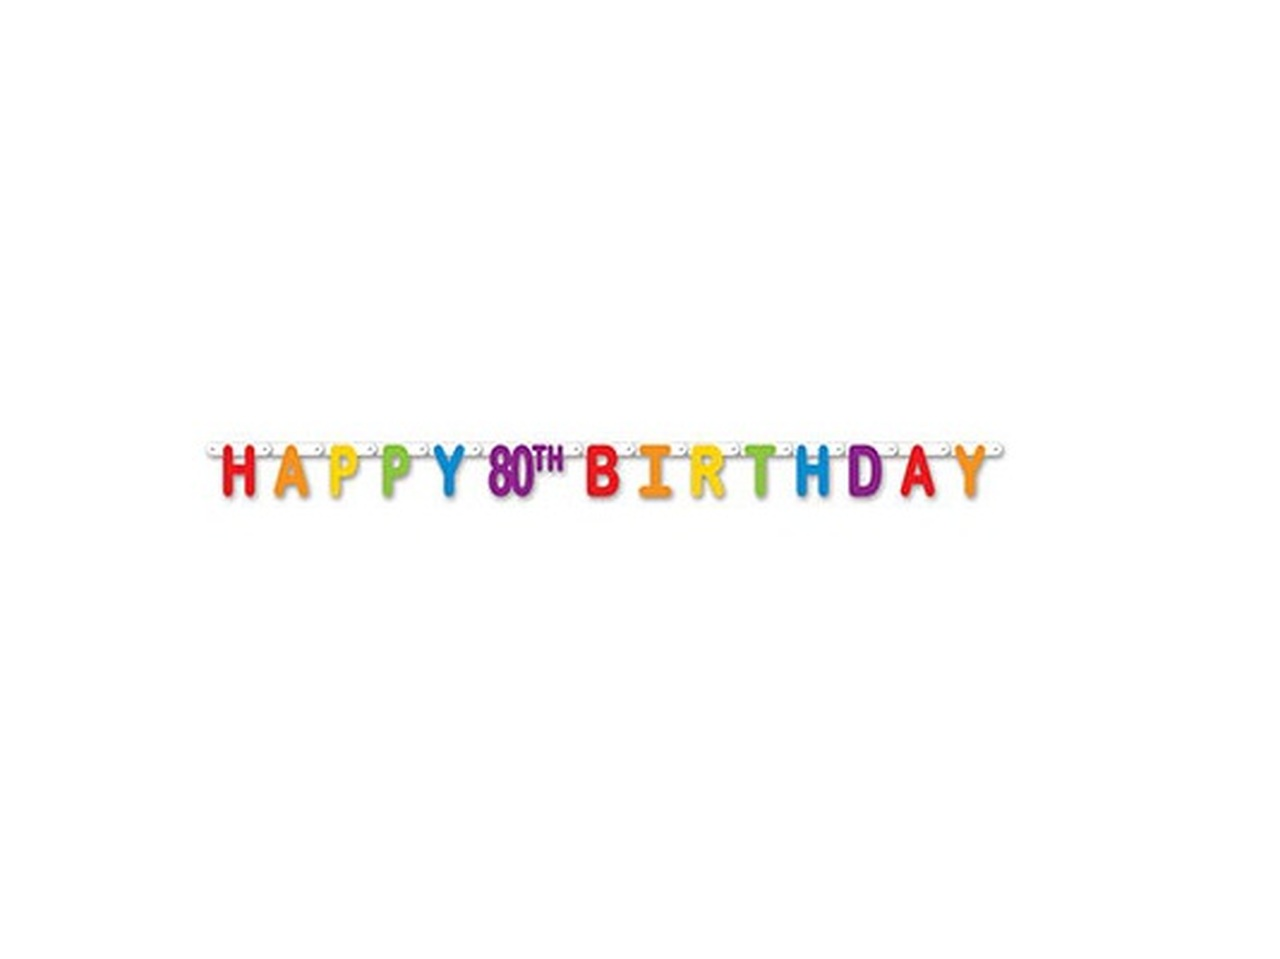 Pack Of 12 Colorful Jointed Happy 80th Birthday Banner Hanging Party Decorations 66